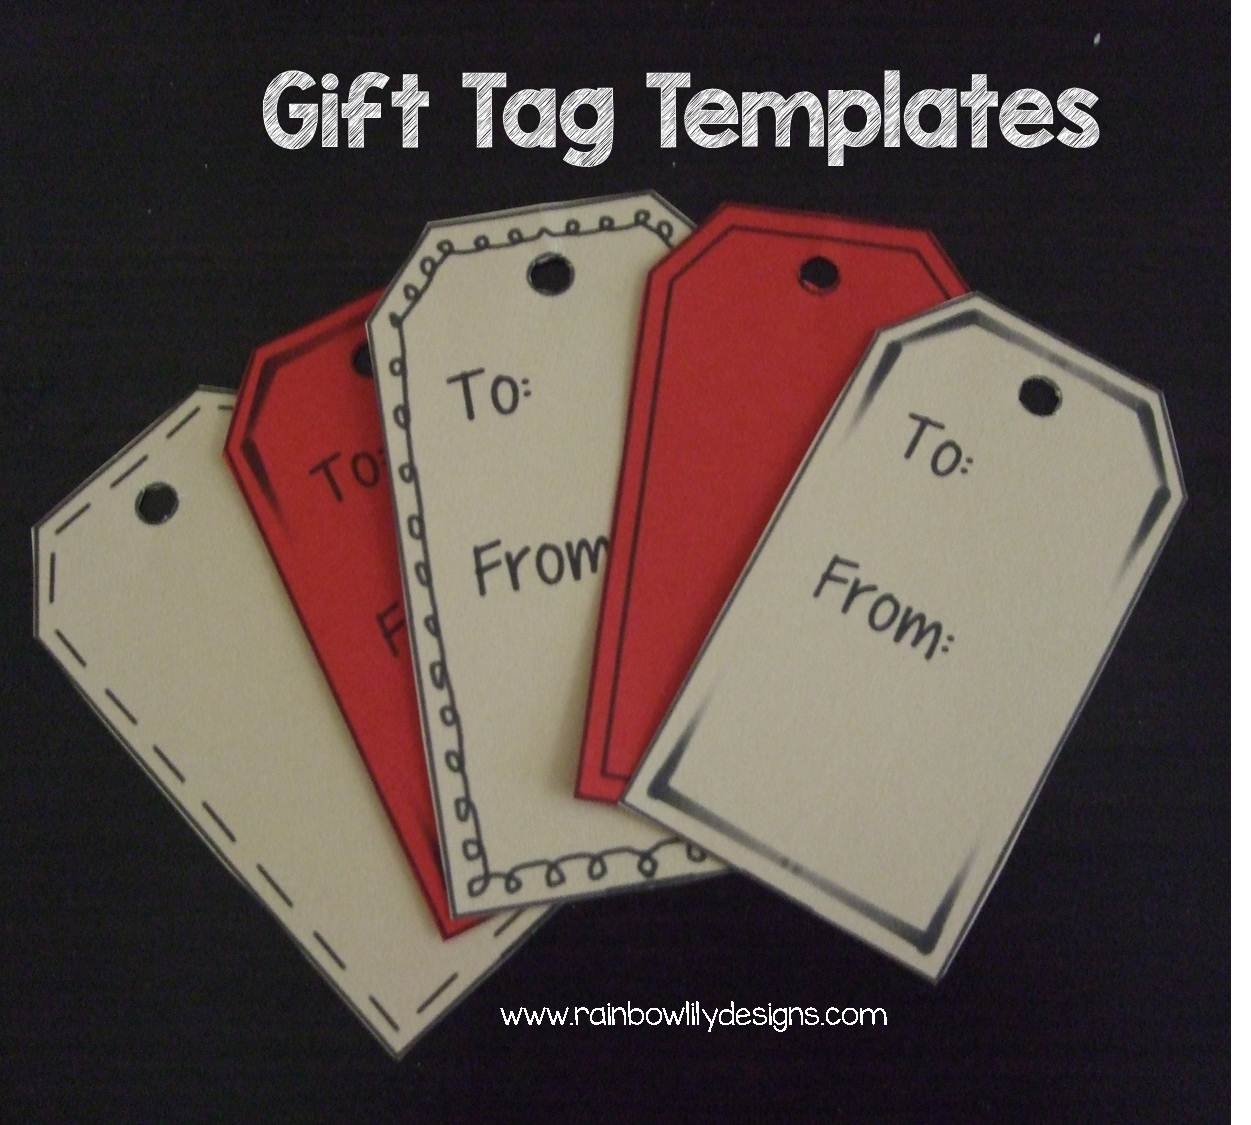 Rainbow Lily Designs: Gift Tag Templates